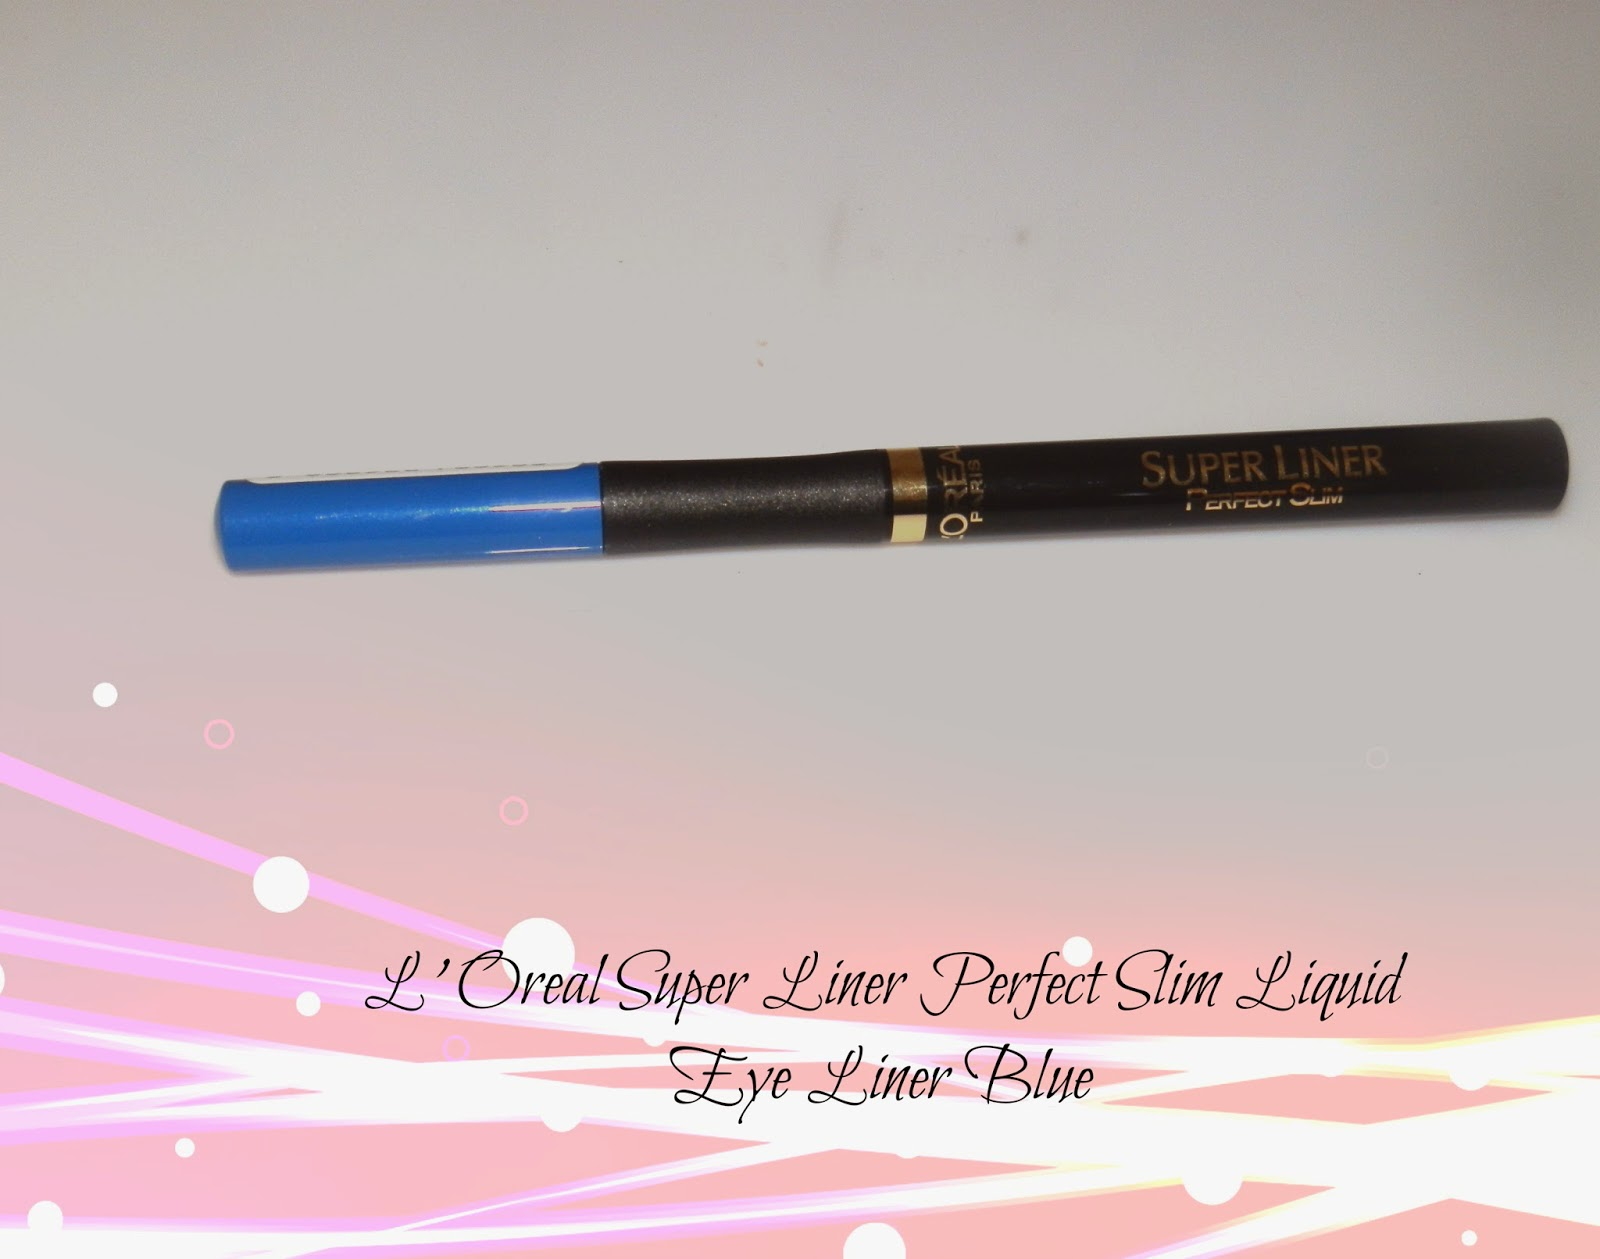 L'Oreal Super Liner Perfect Slim Liquid Eye Liner Blue